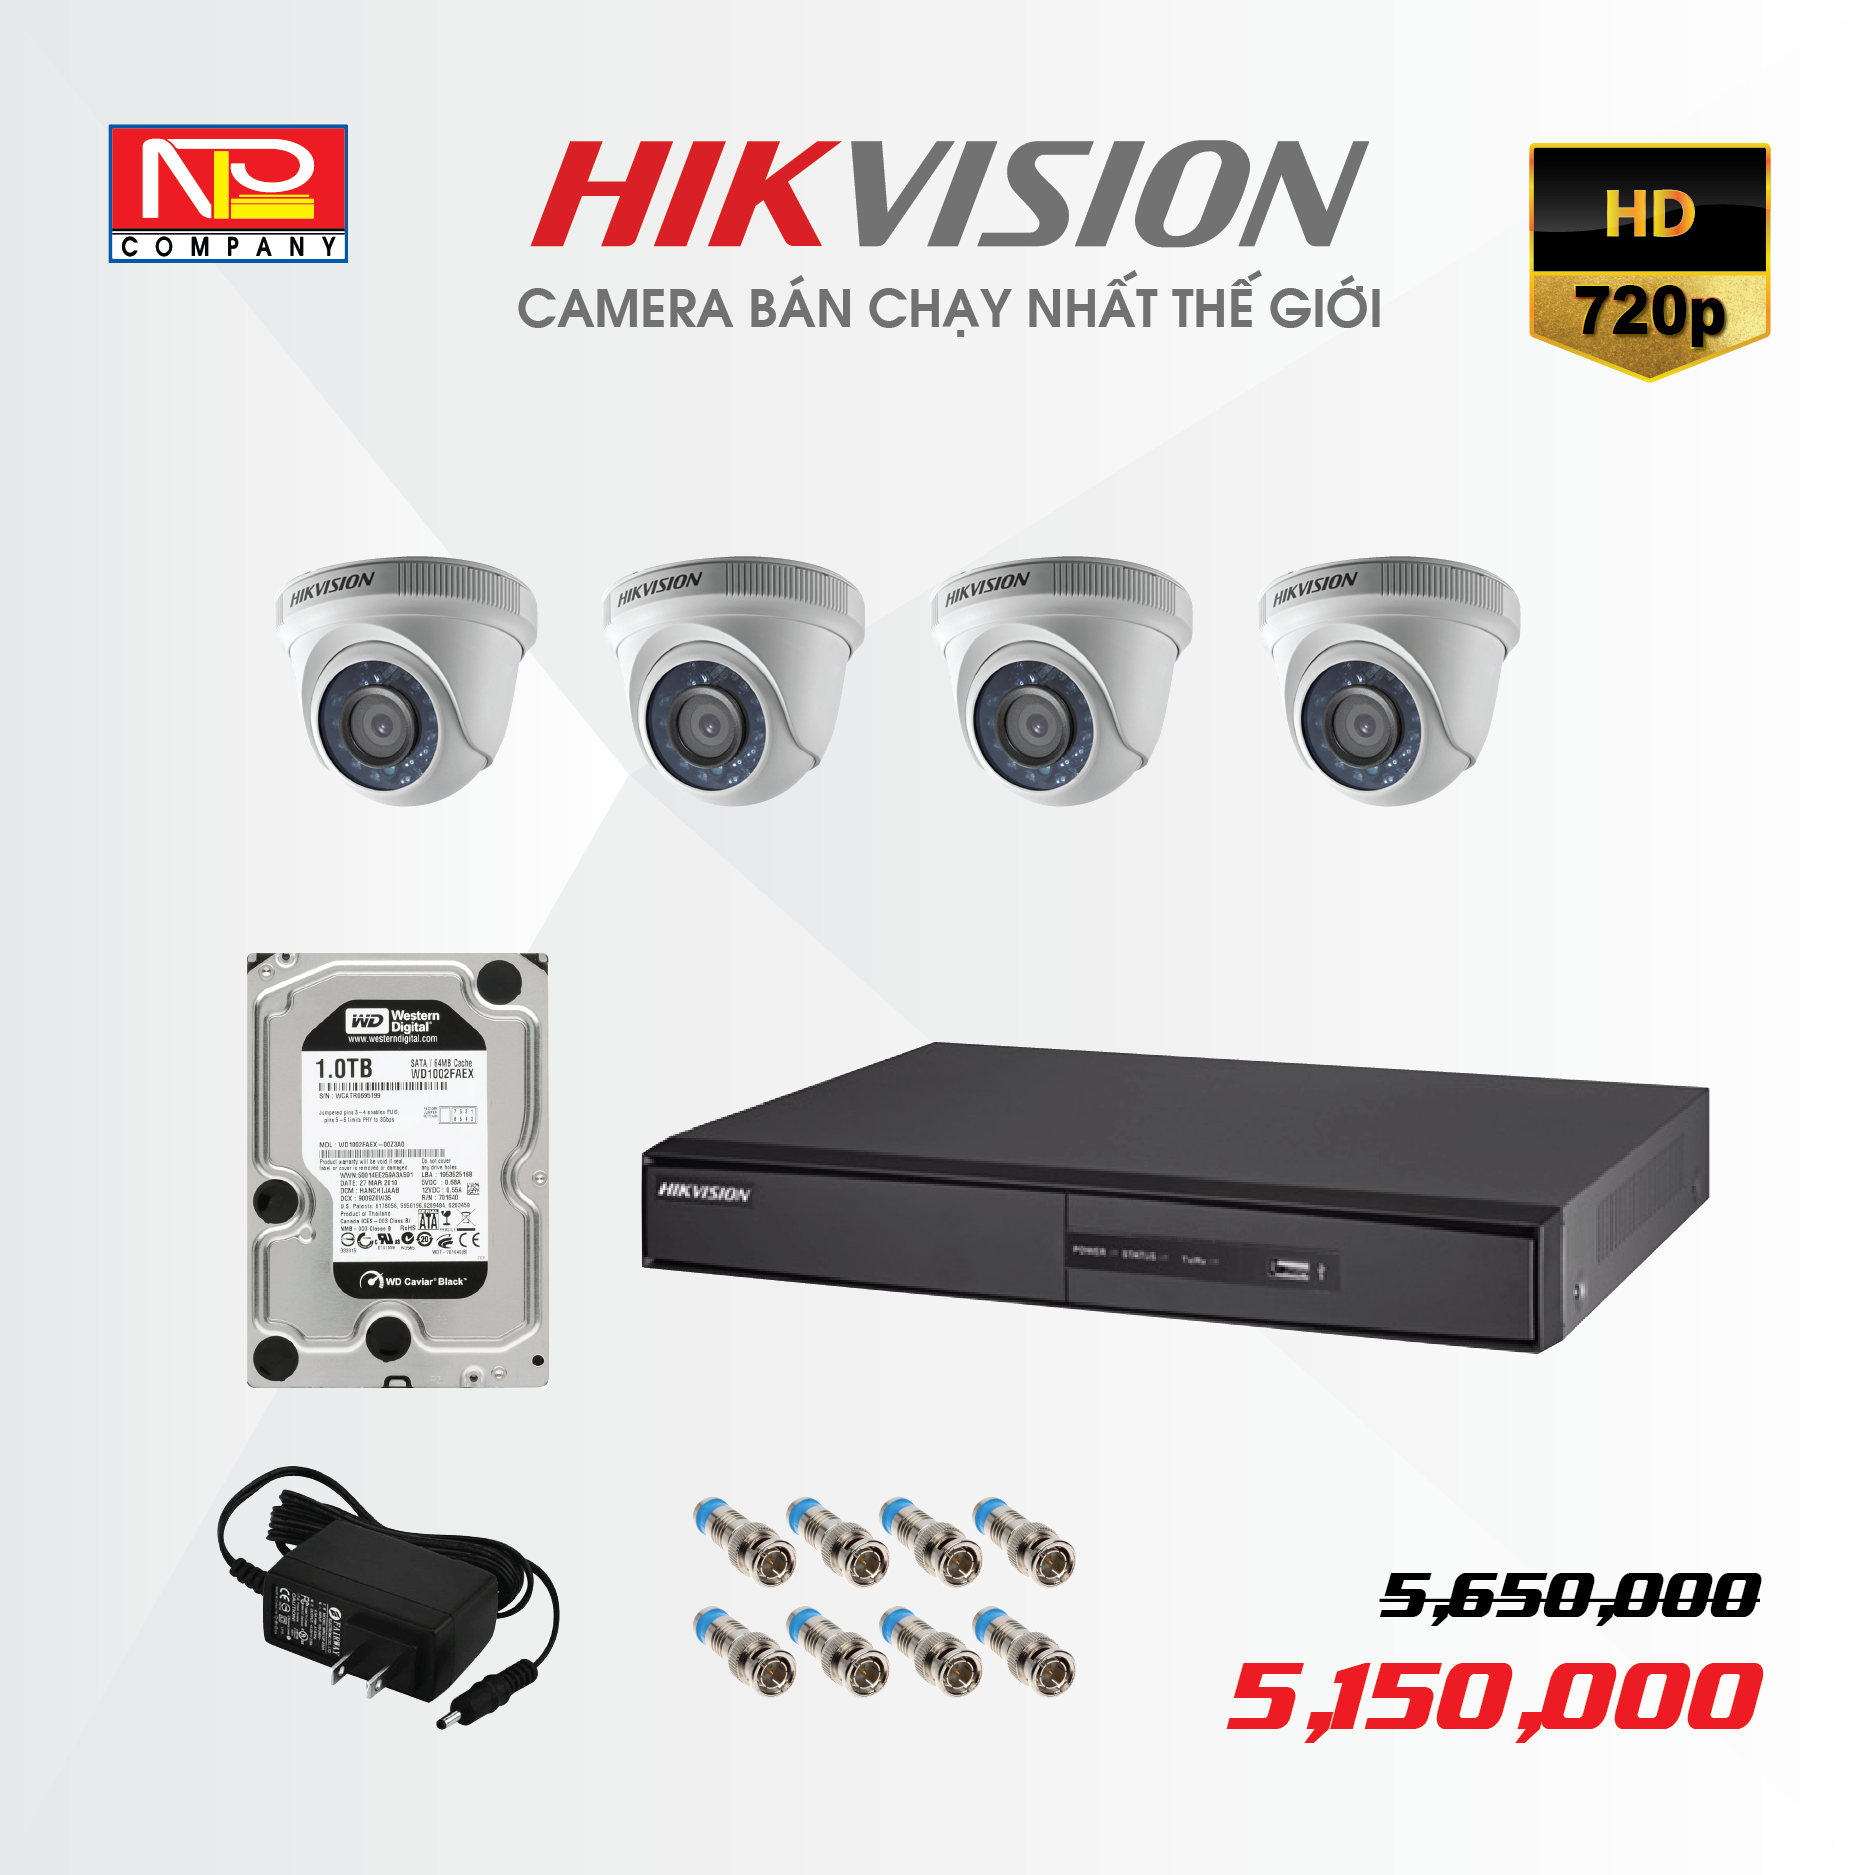 Bộ kit 4 camera analog Hikvision HD720P